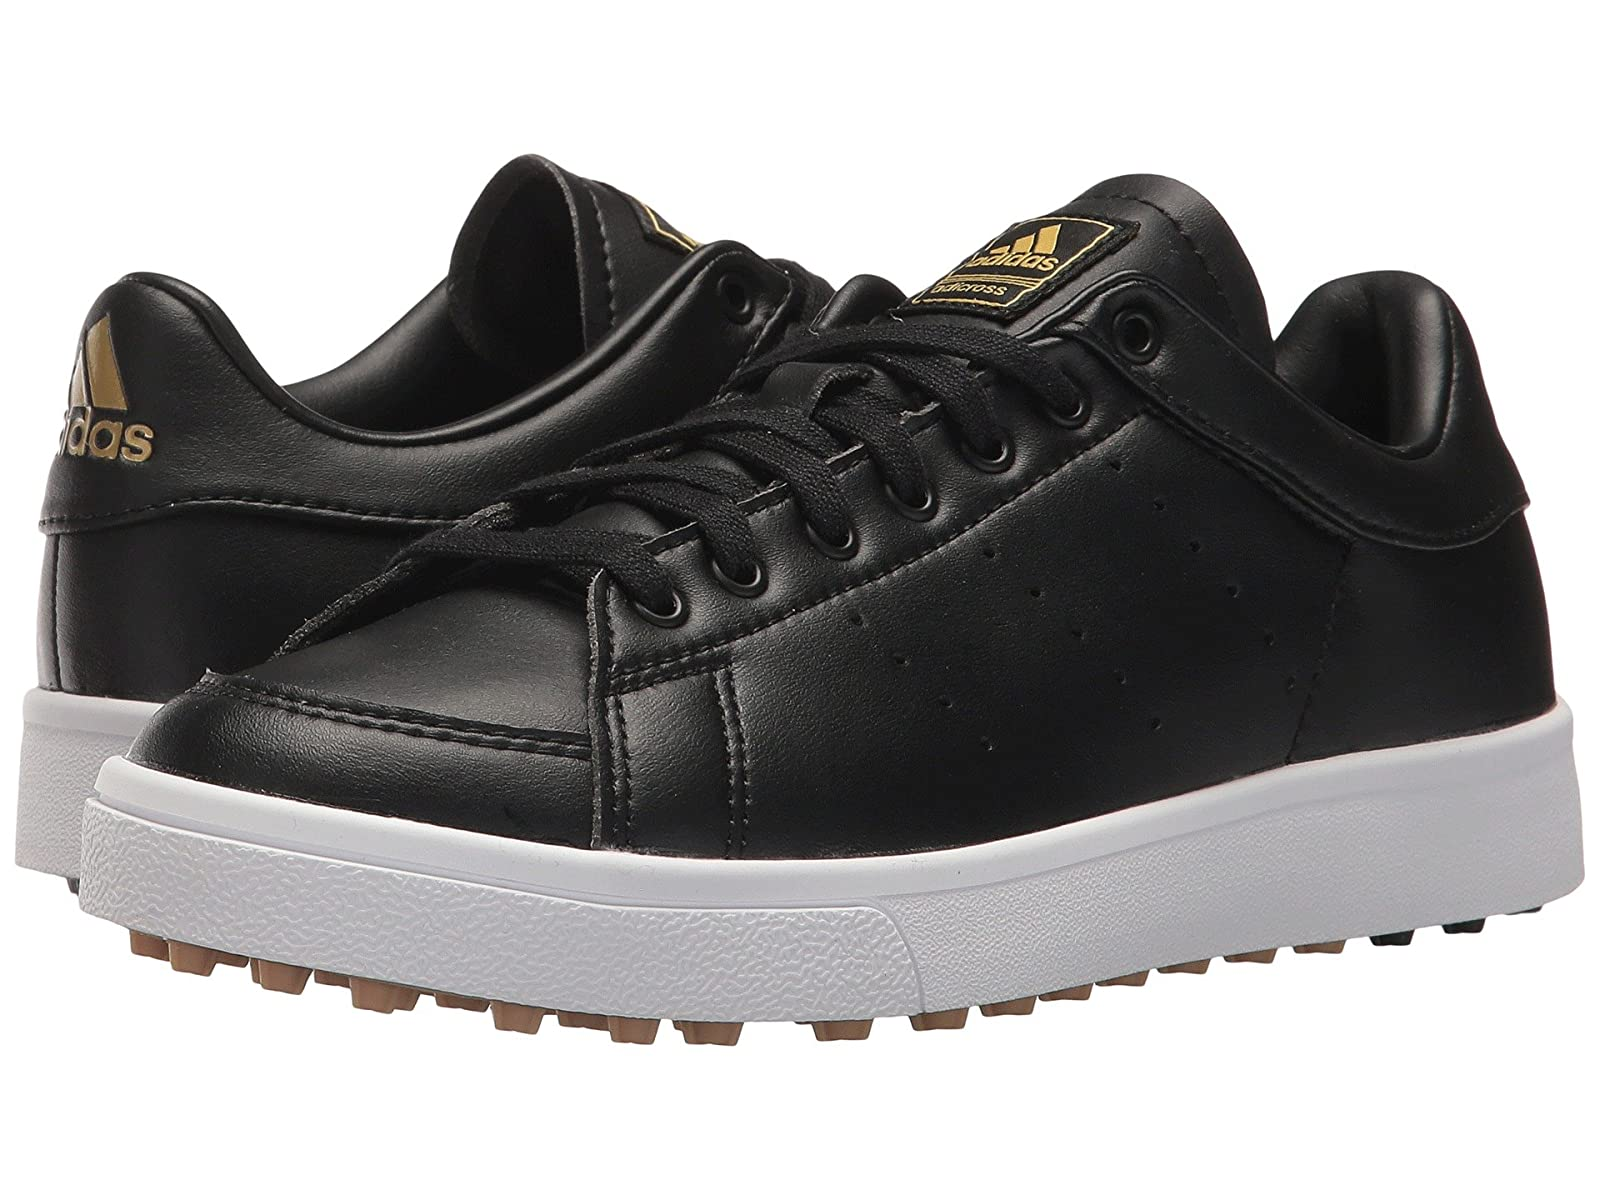 adidas Golf Jr. Adicross Classic (Little Kid/Big Kid)Atmospheric grades have affordable shoes